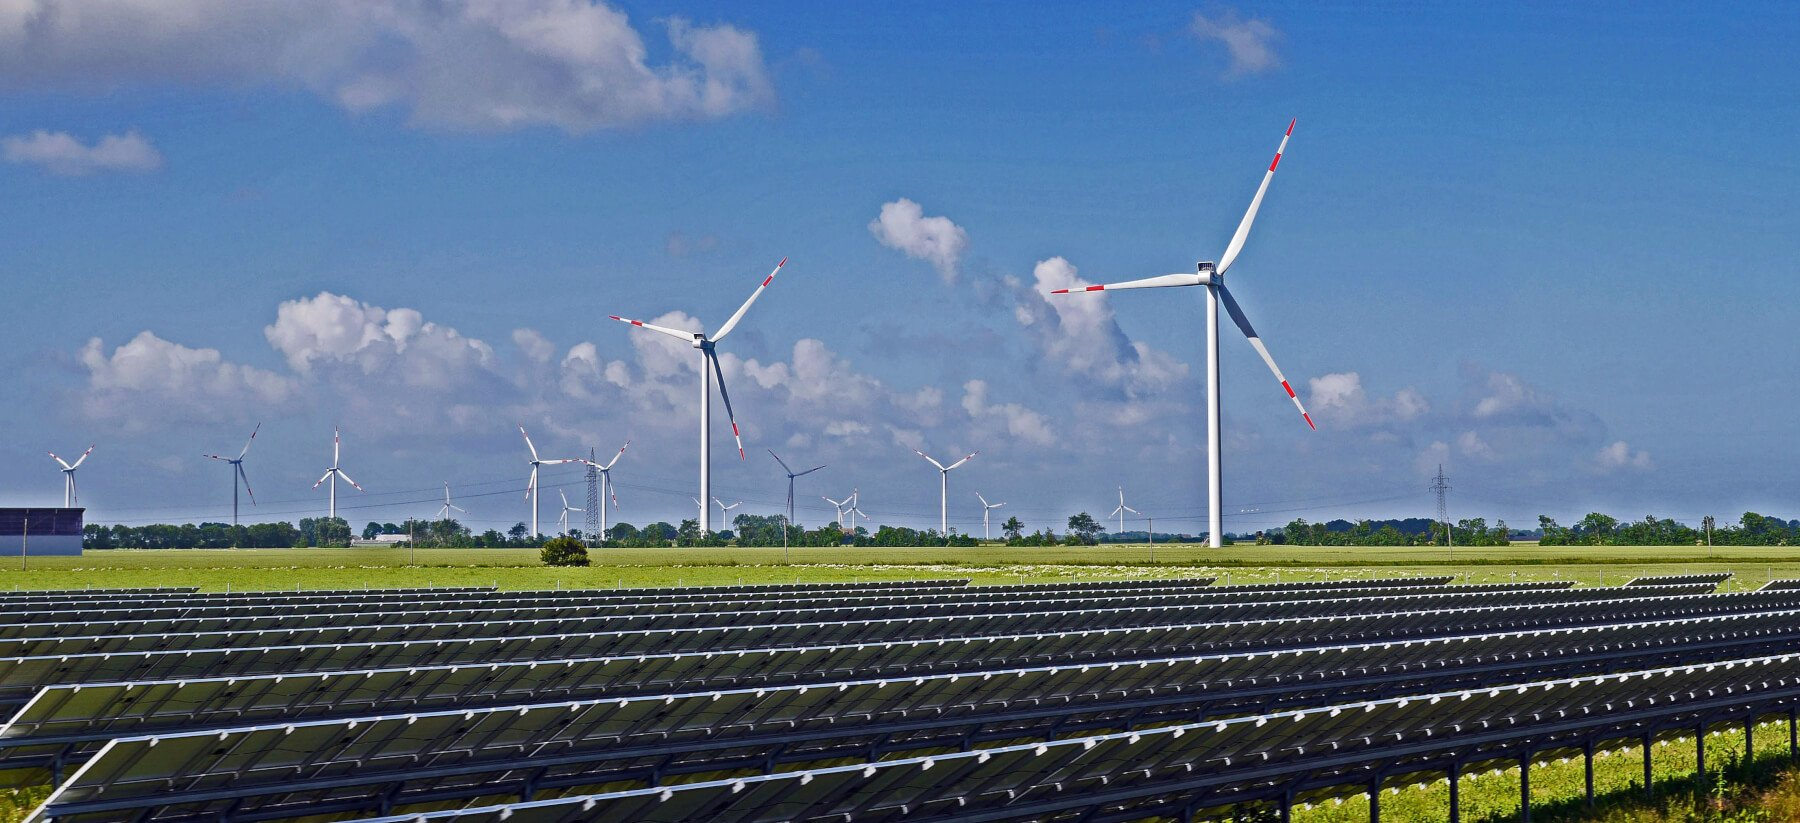 Photovoltaic systems and wind turbines are examples of Distributed Energy Resources